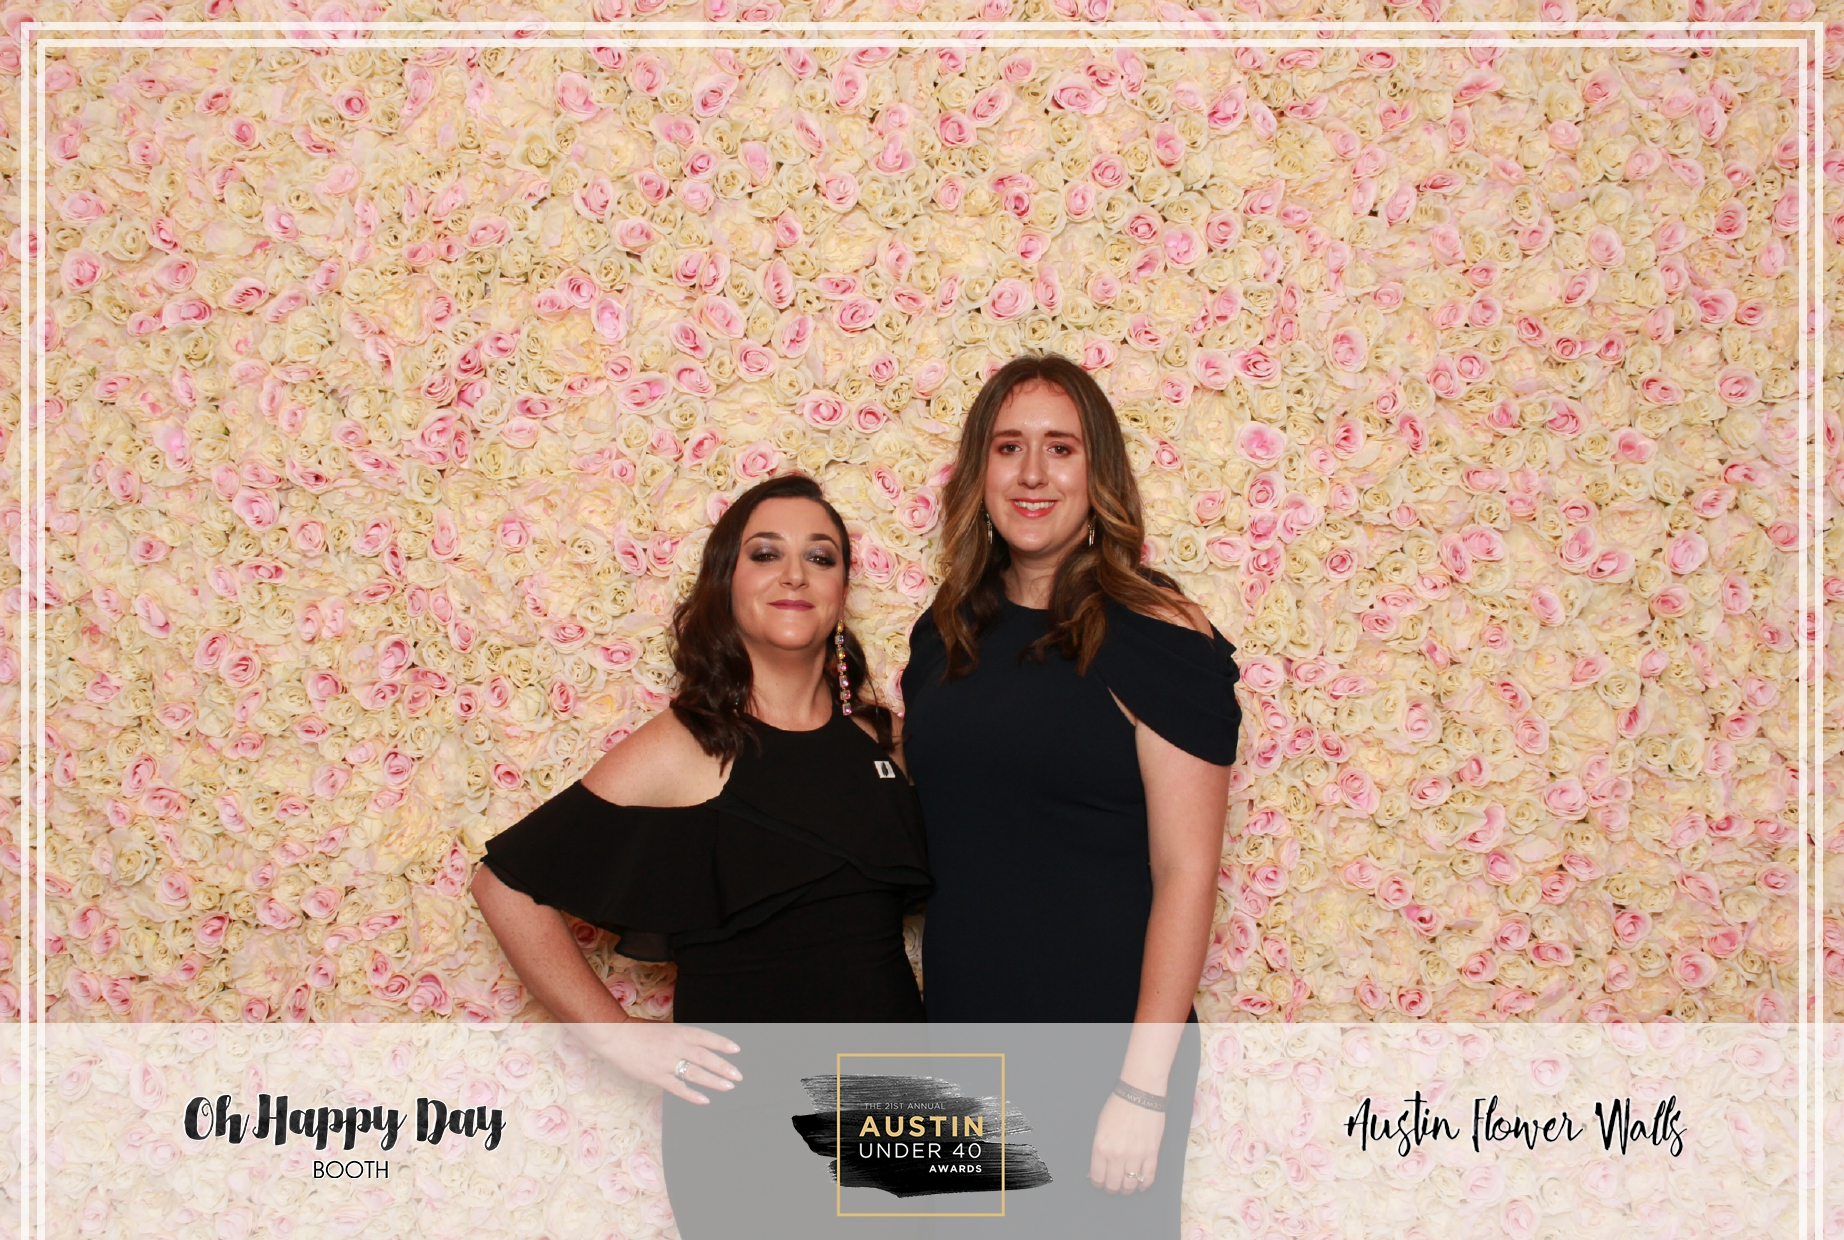 Oh Happy Day Booth - Austin Under 40-94.jpg